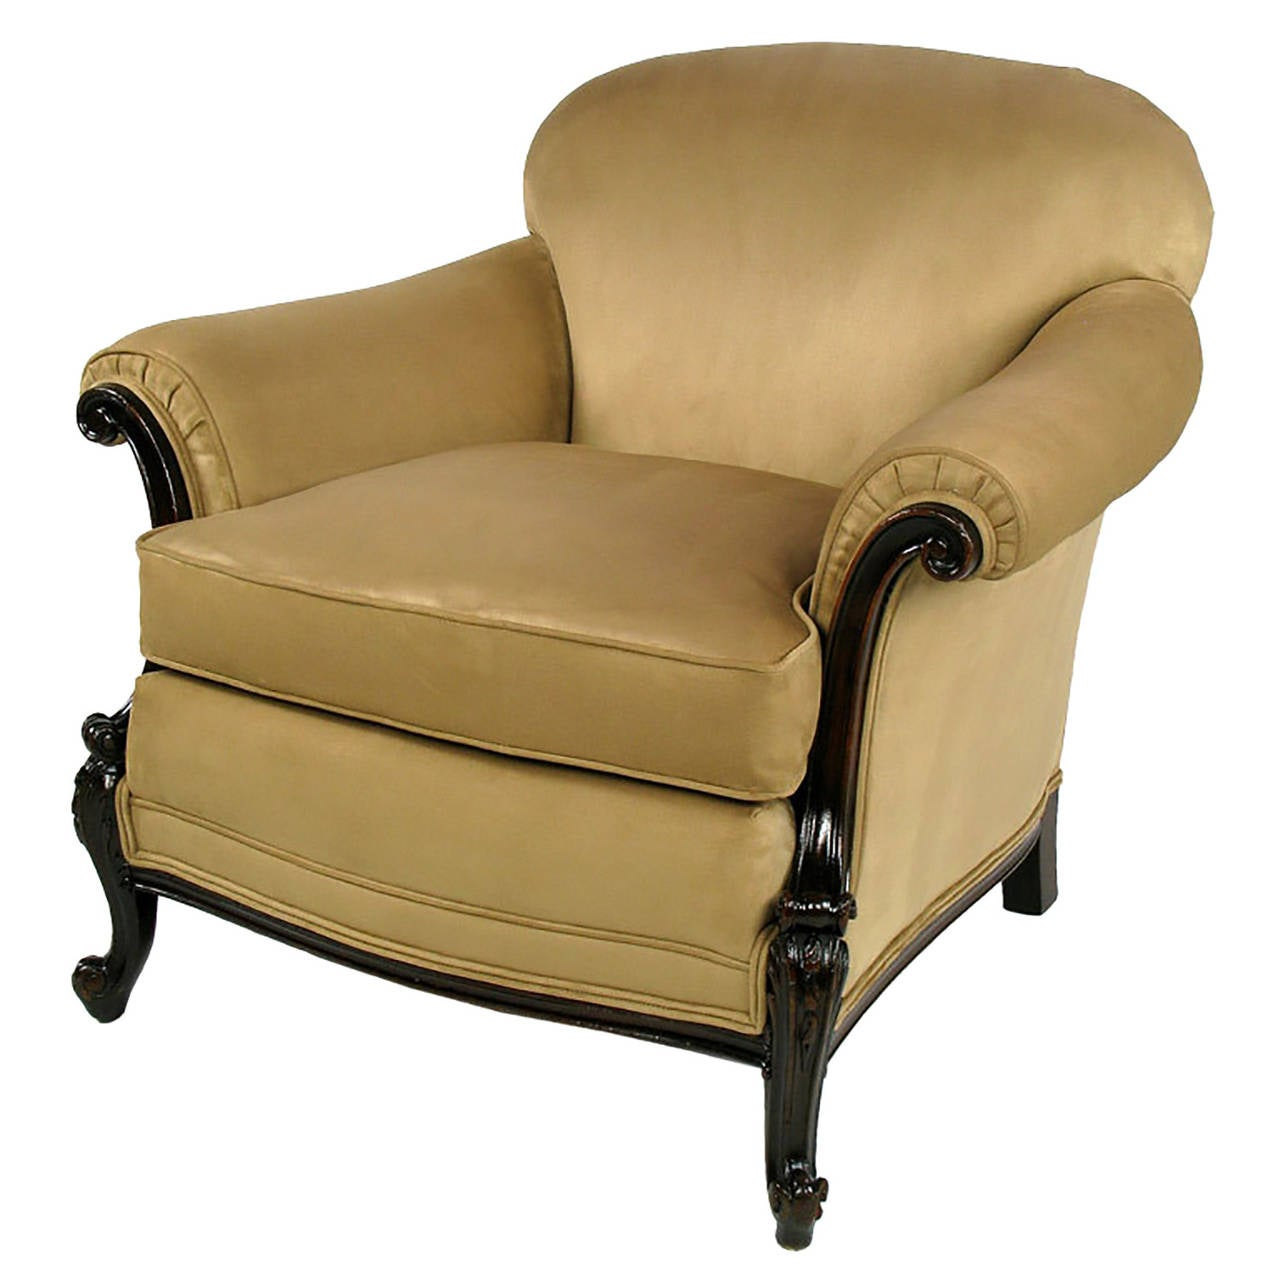 Early 20th Century Rolled Arm Club Chair In Ultra Suede For Sale At 1stdibs